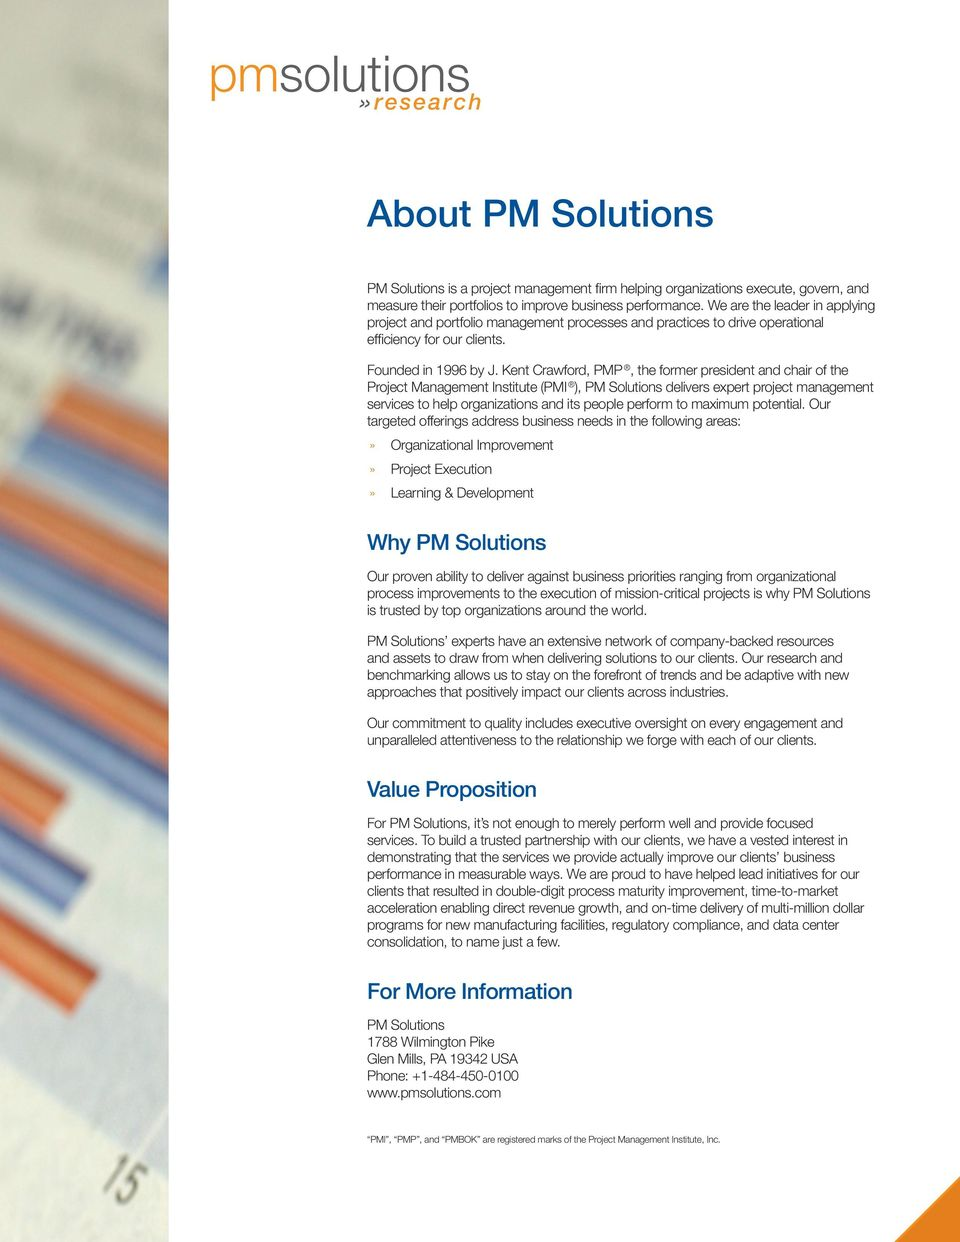 Kent Crawford, PMP, the former president and chair of the Project Management Institute (PMI ), PM Solutions delivers expert project management services to help organizations and its people perform to